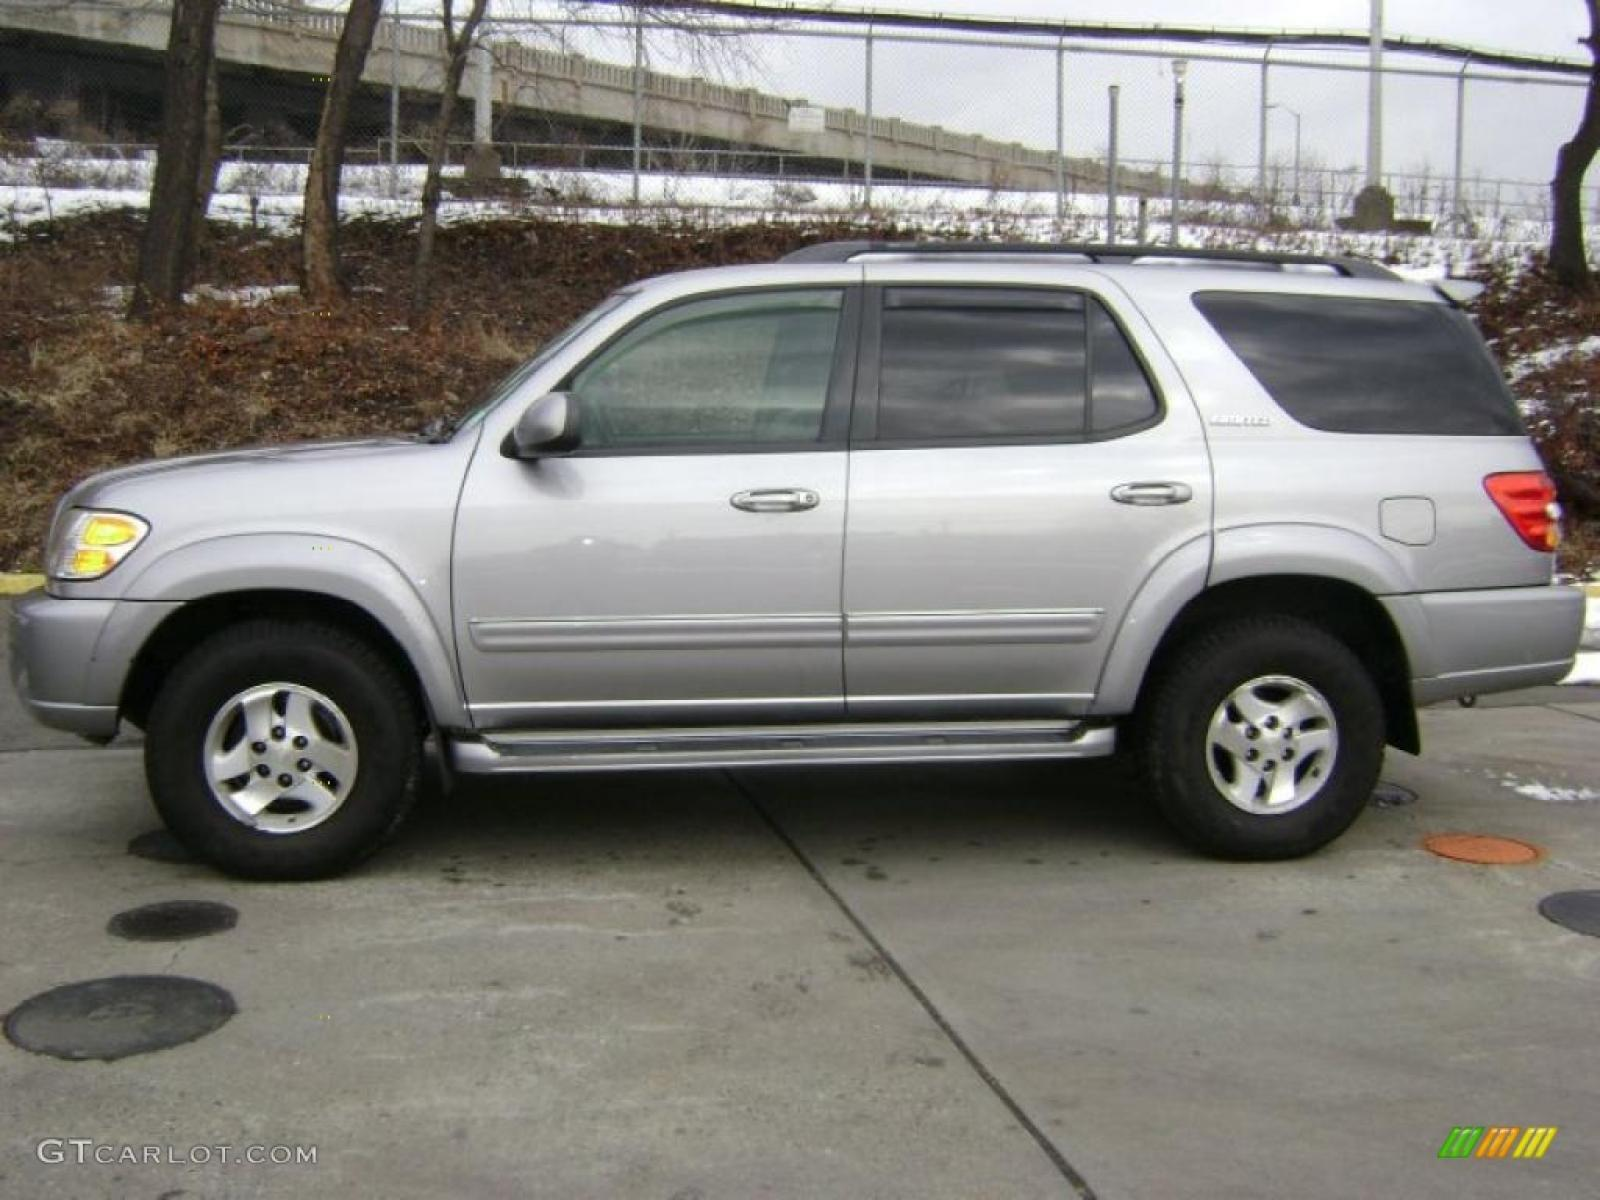 800 1024 1280 1600 origin 2002 Toyota Sequoia ...